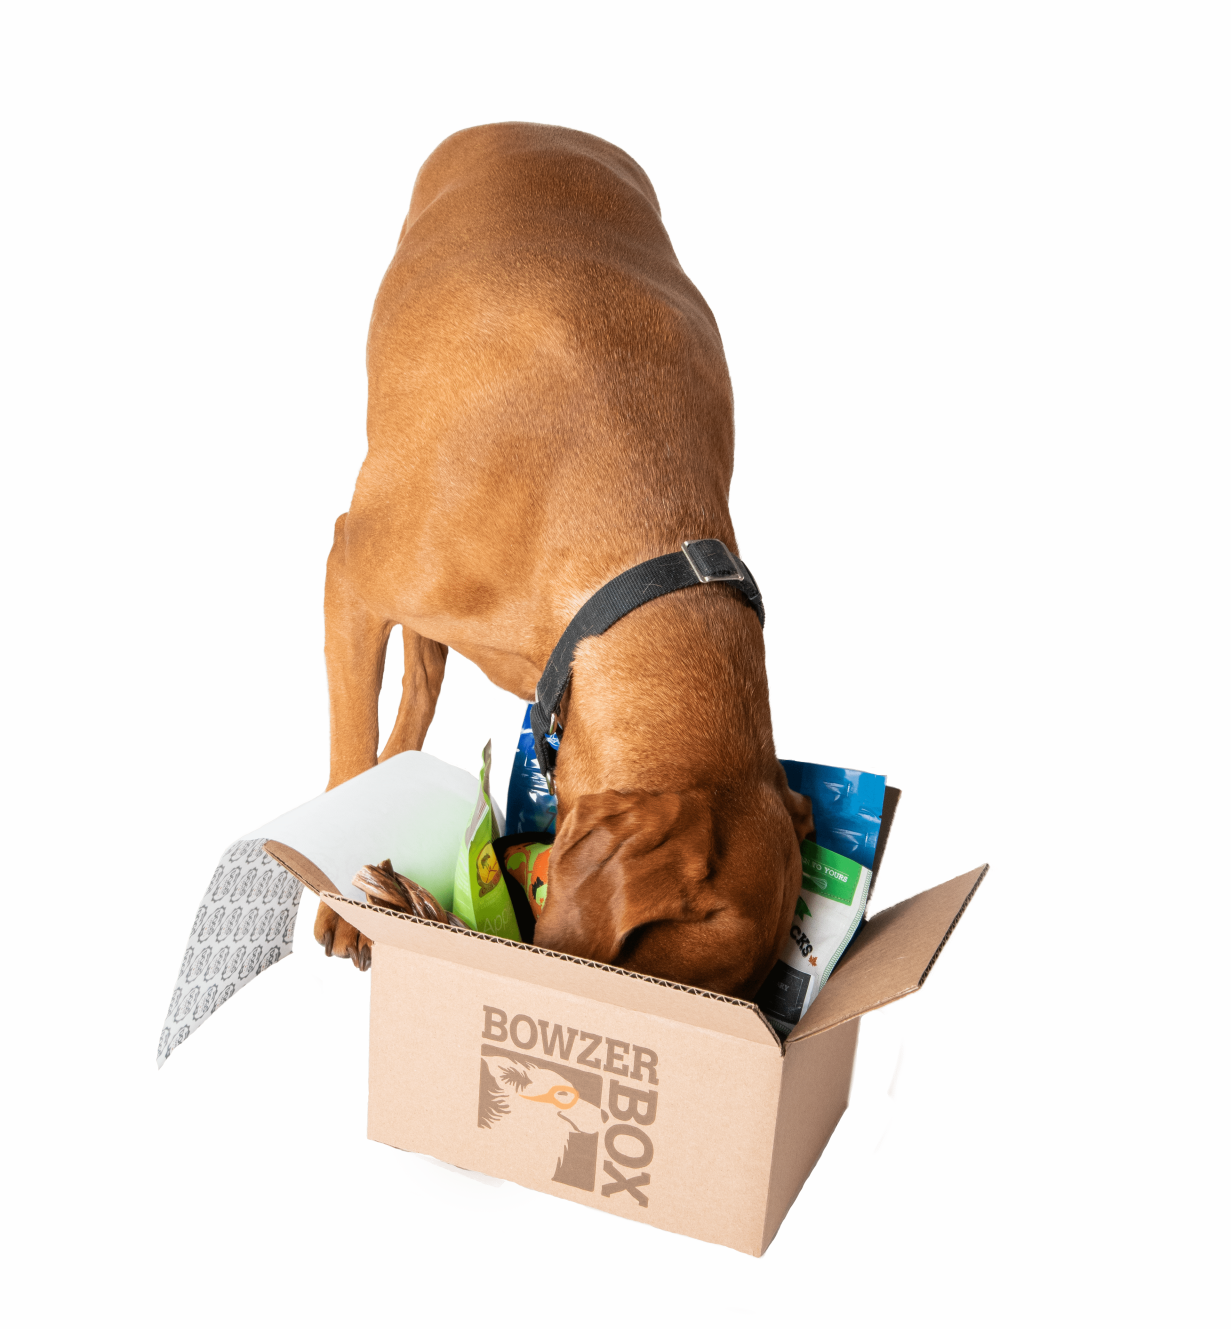 Dog looking in a Bowzer Box